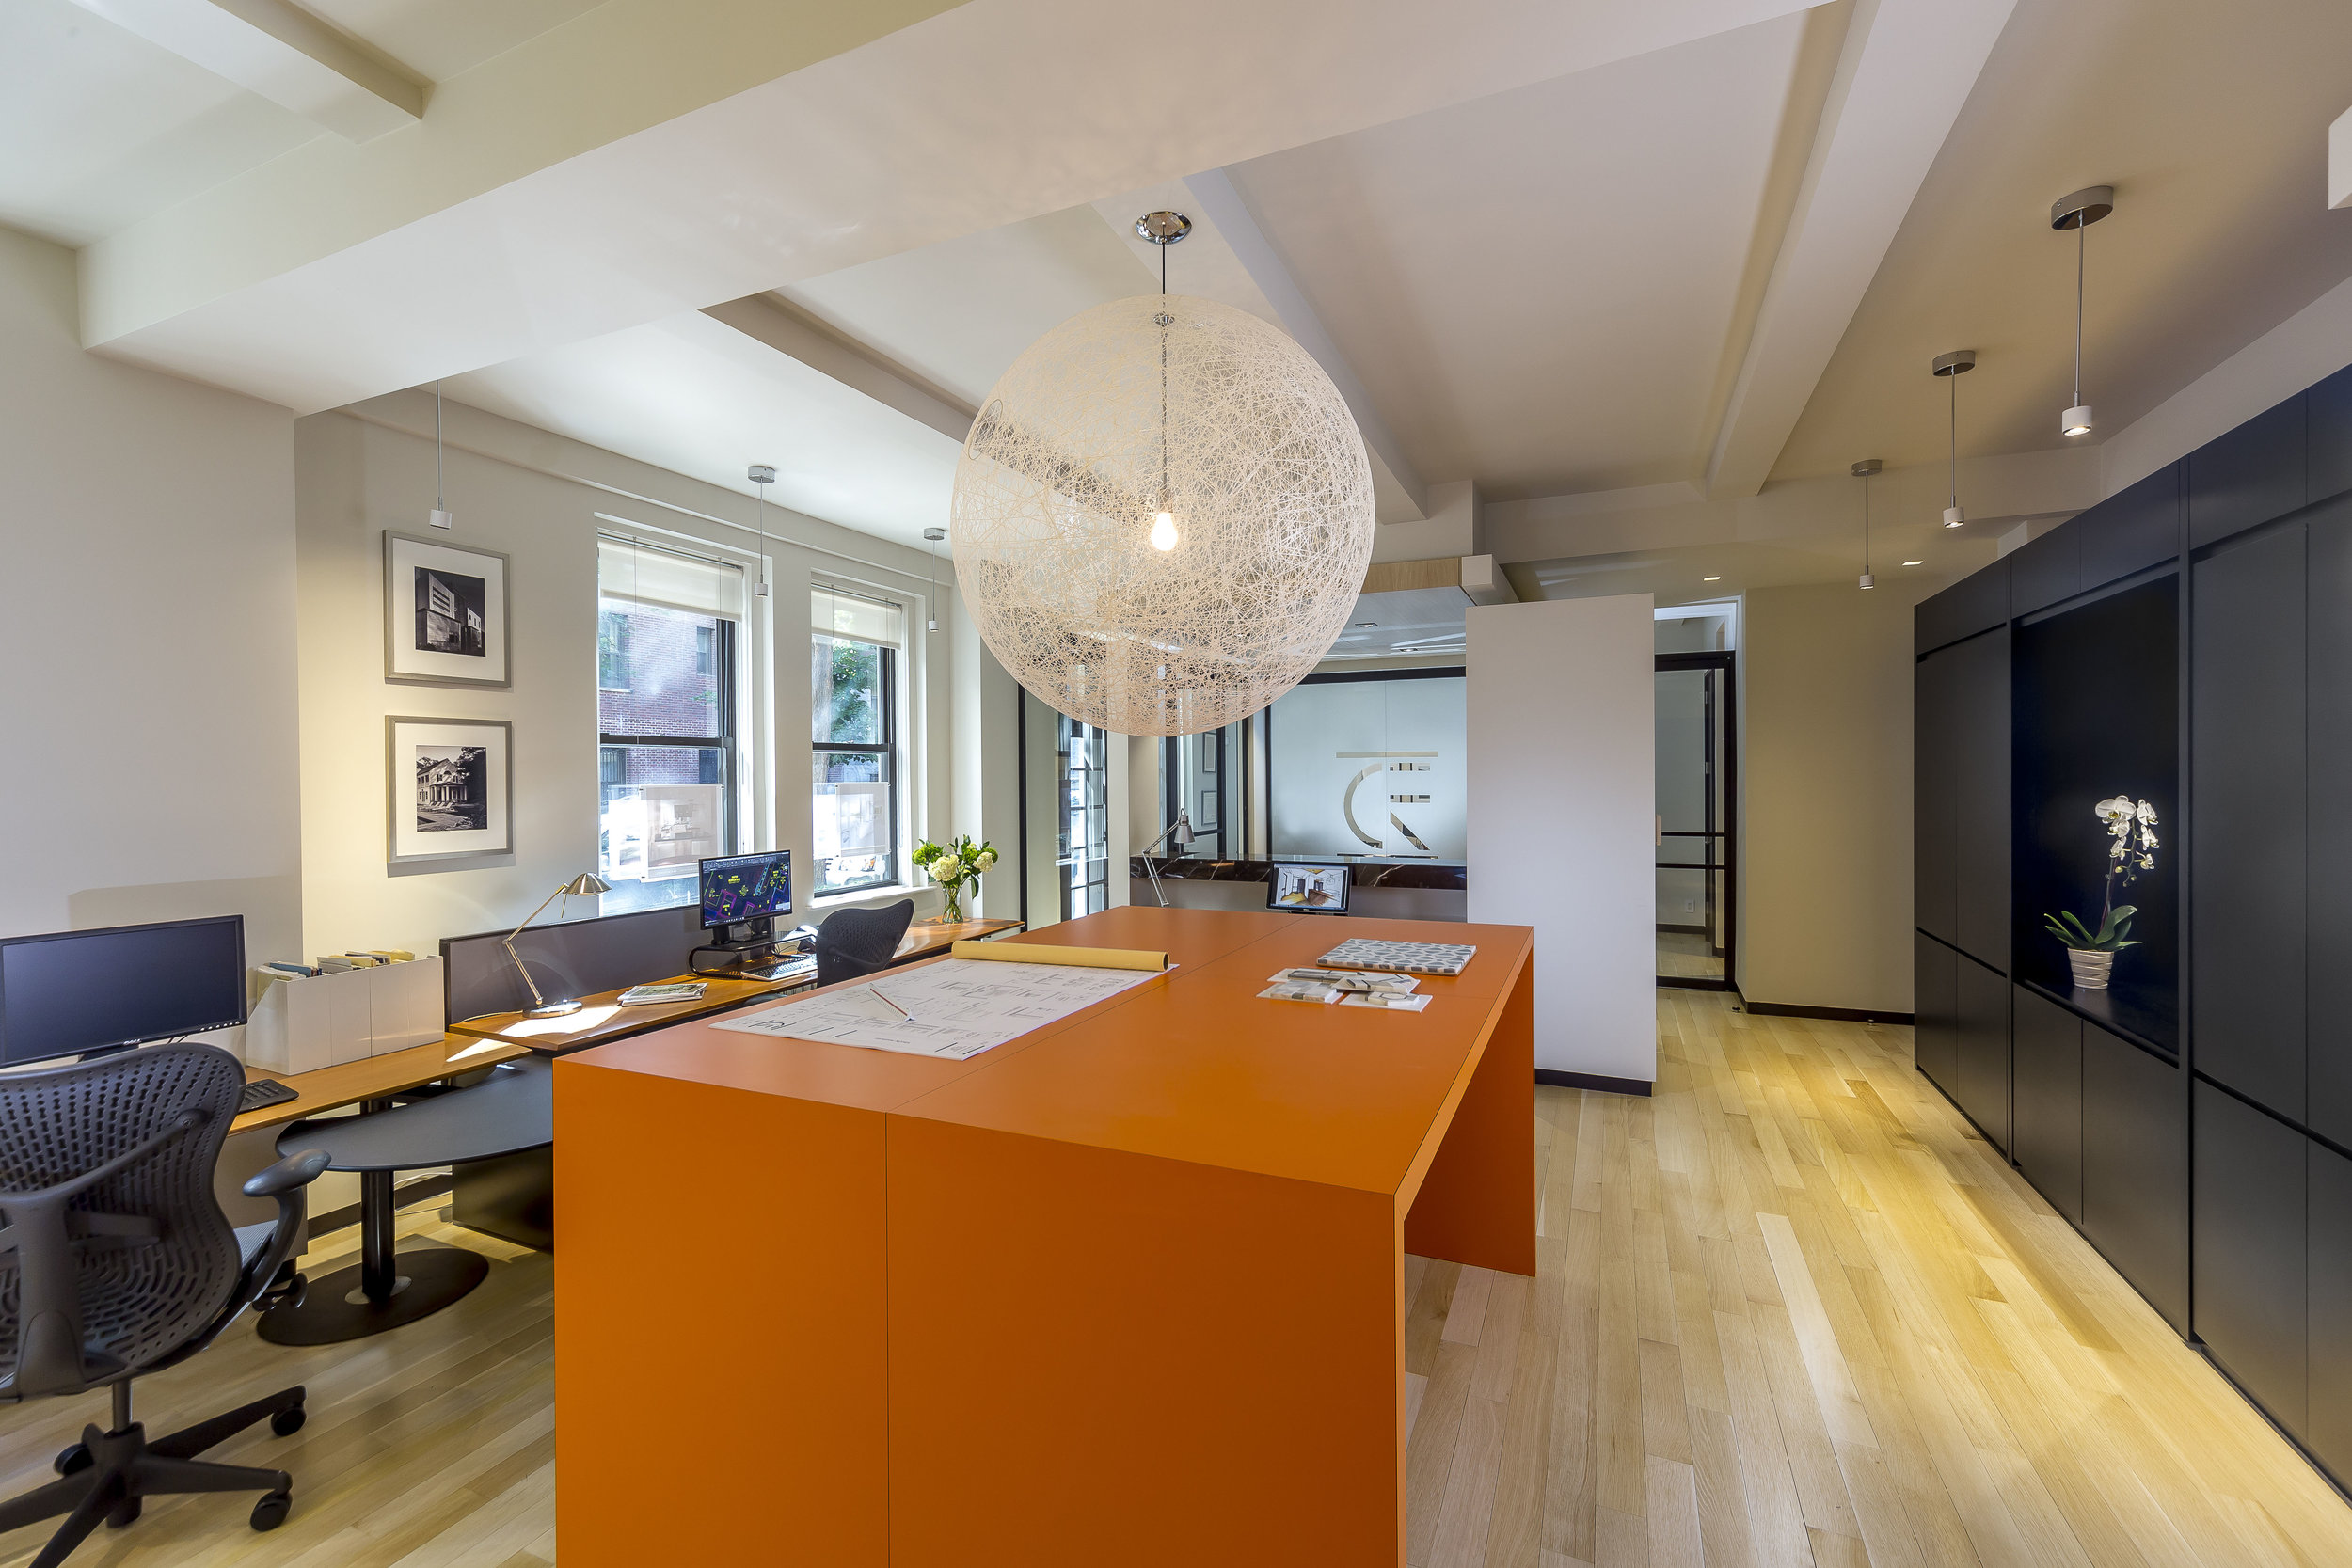 Location:  Upper West Side, Manhattan  Type:  Office  Sq/Ft:  1,800   Details:  Level 5 Finish White Wall, Beam Moulding